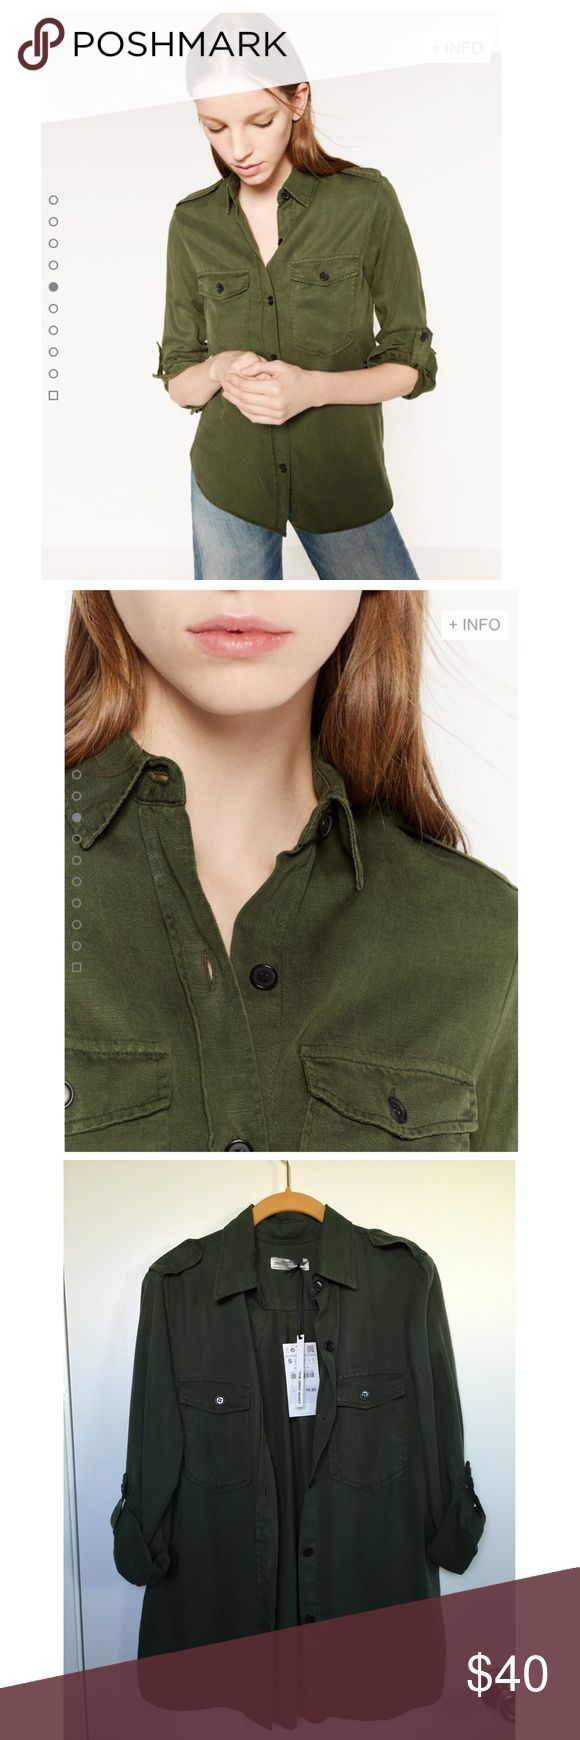 NWT Zara Military Style Shirt On-trend military style shirt in the perfect shade of green and made from soft, drapey lyocell.  Only tried on, never worn, NWT.  Feel free to comment with any questions--thanks for looking! ❤️ Zara Tops Button Down Shirts